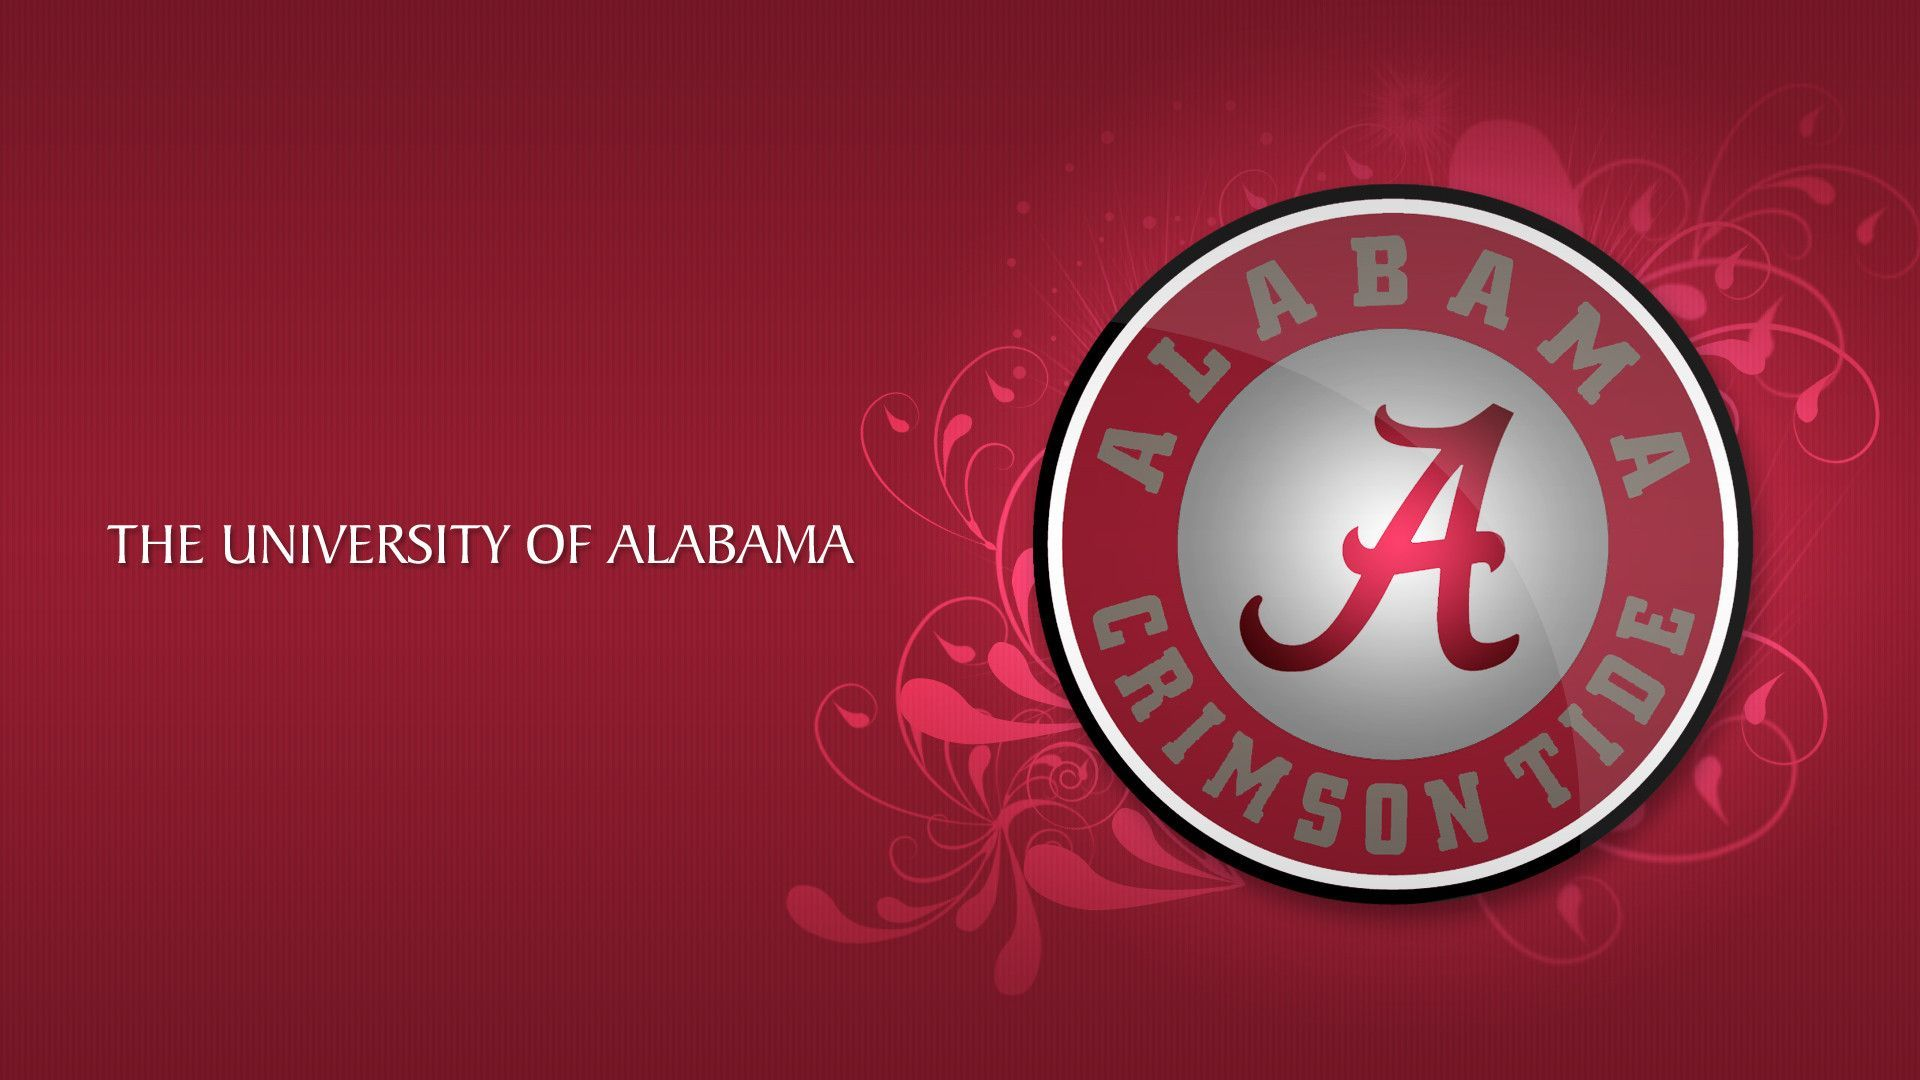 Alabama Football Schedule Wallpaper 1920 1200 Alabama Football Pictures Wallpapers Alabama Football Pictures Alabama Crimson Tide Alabama Crimson Tide Logo